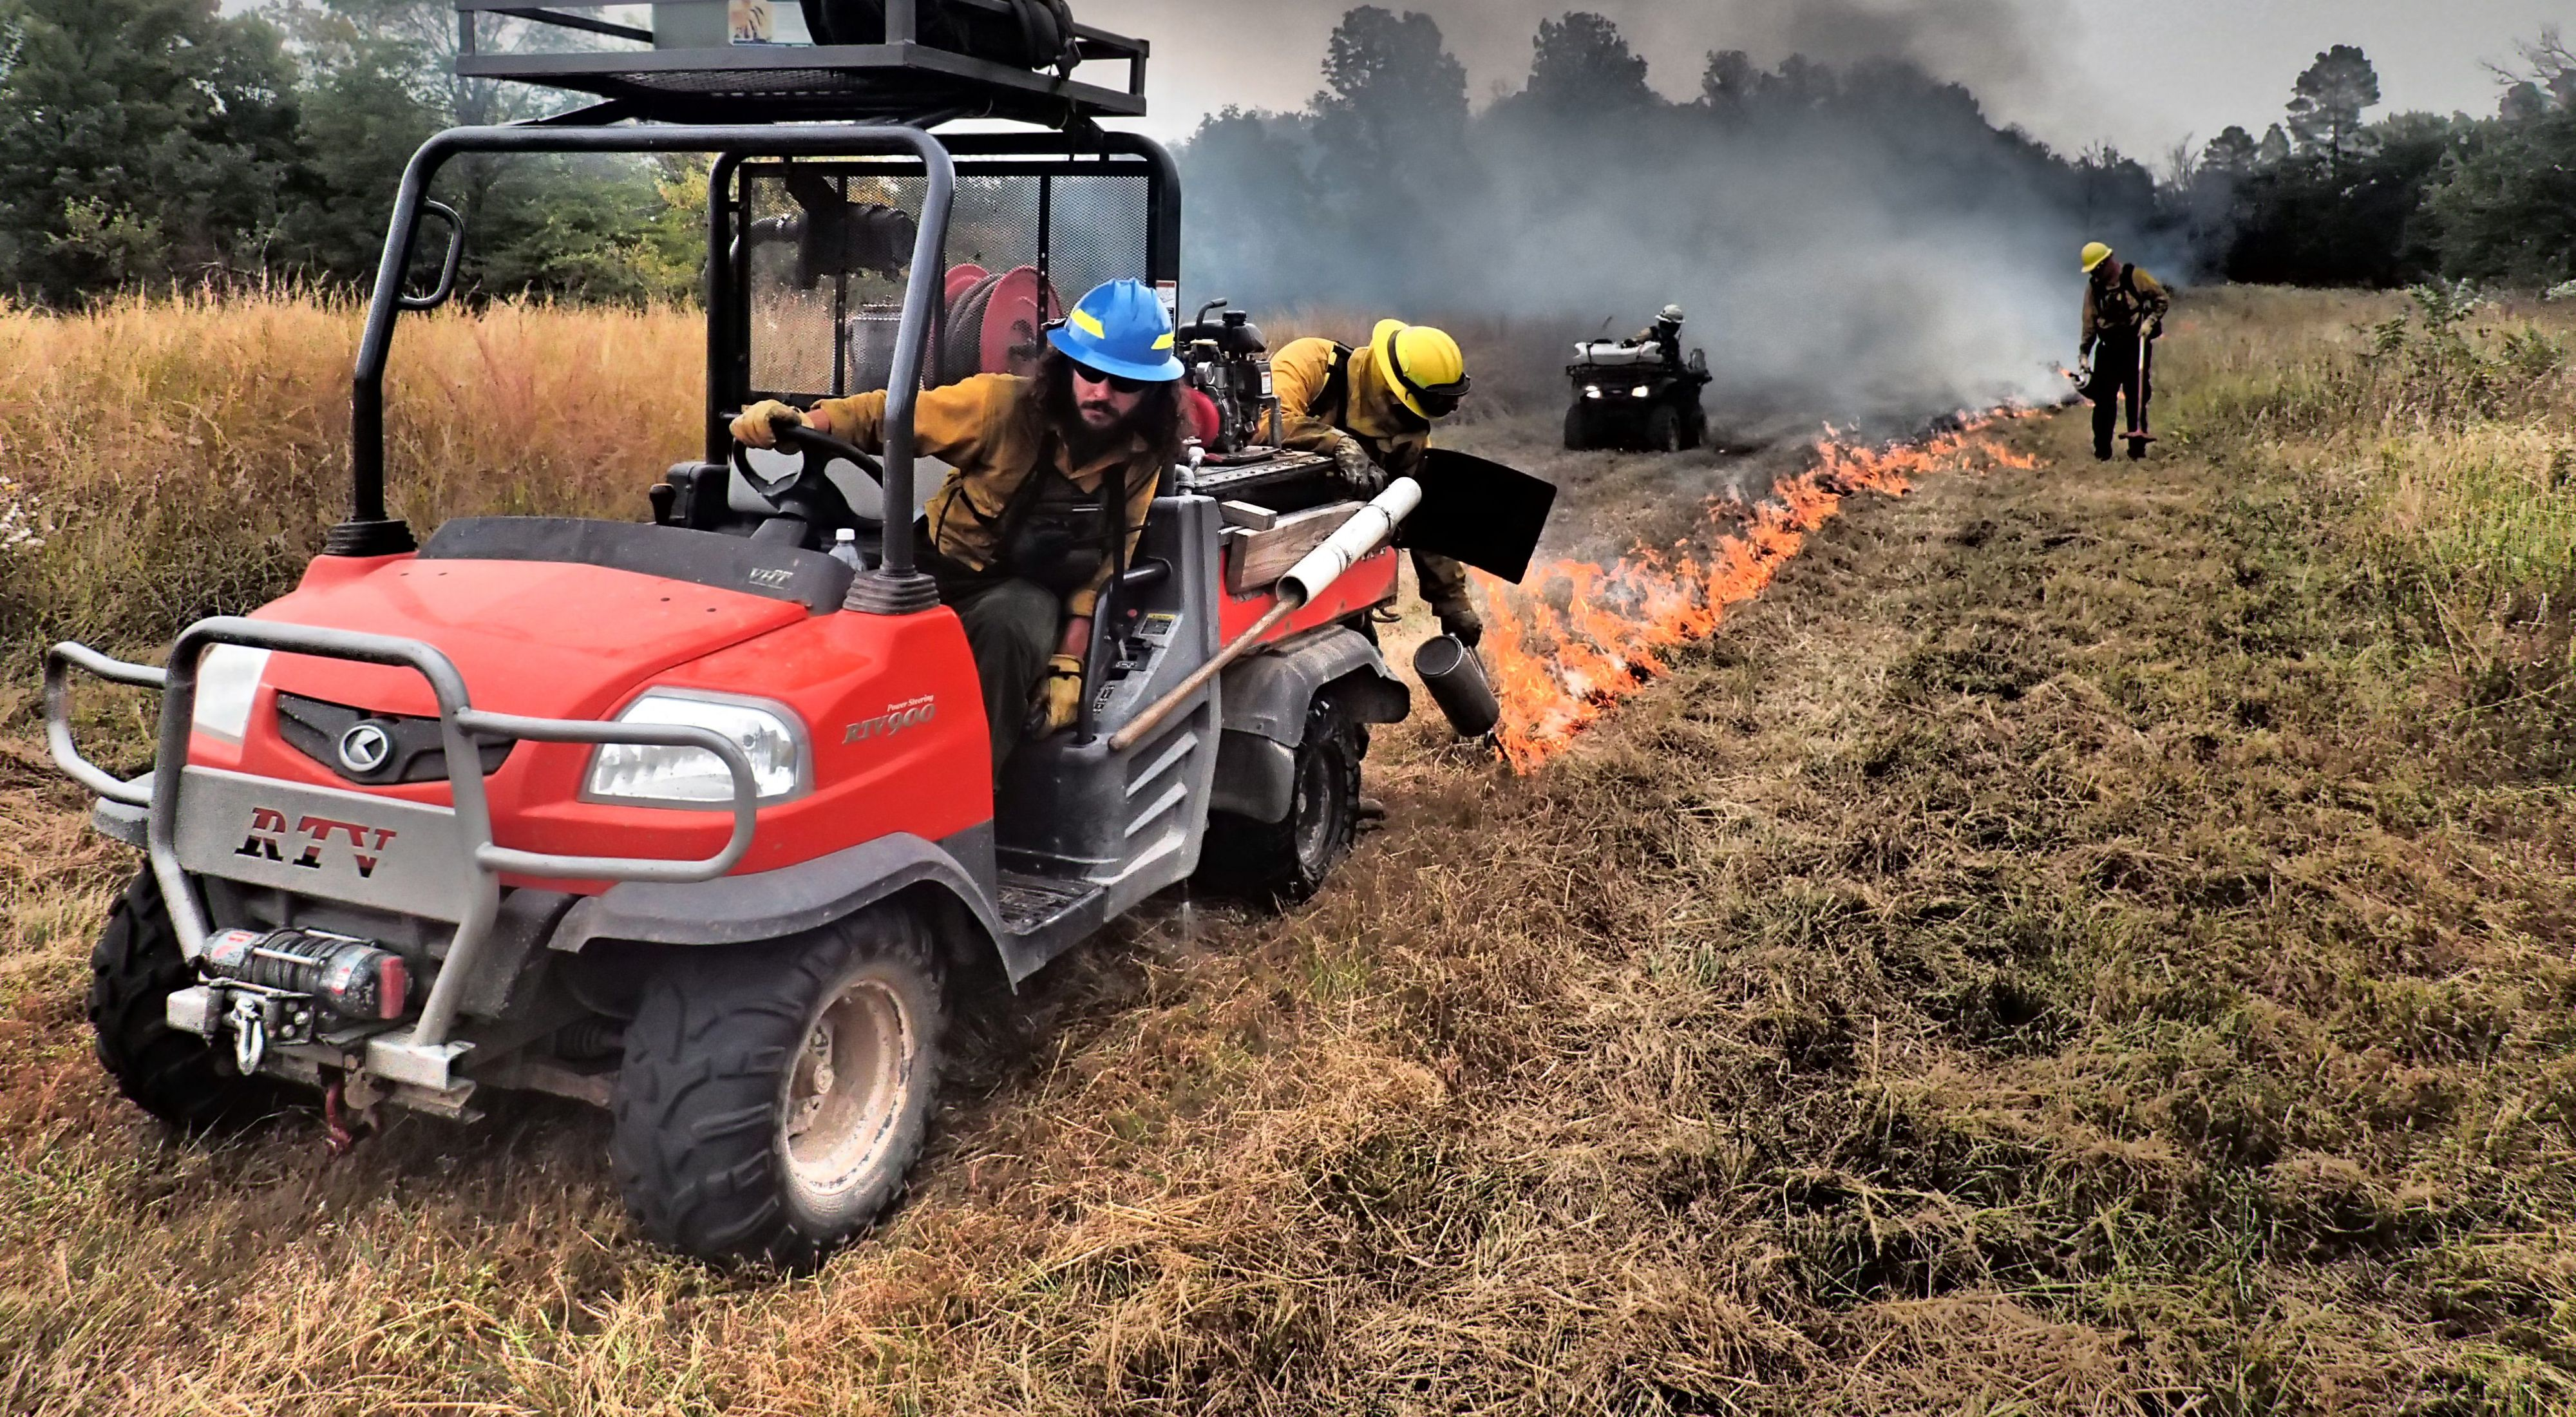 Clint and crew prescribed fire